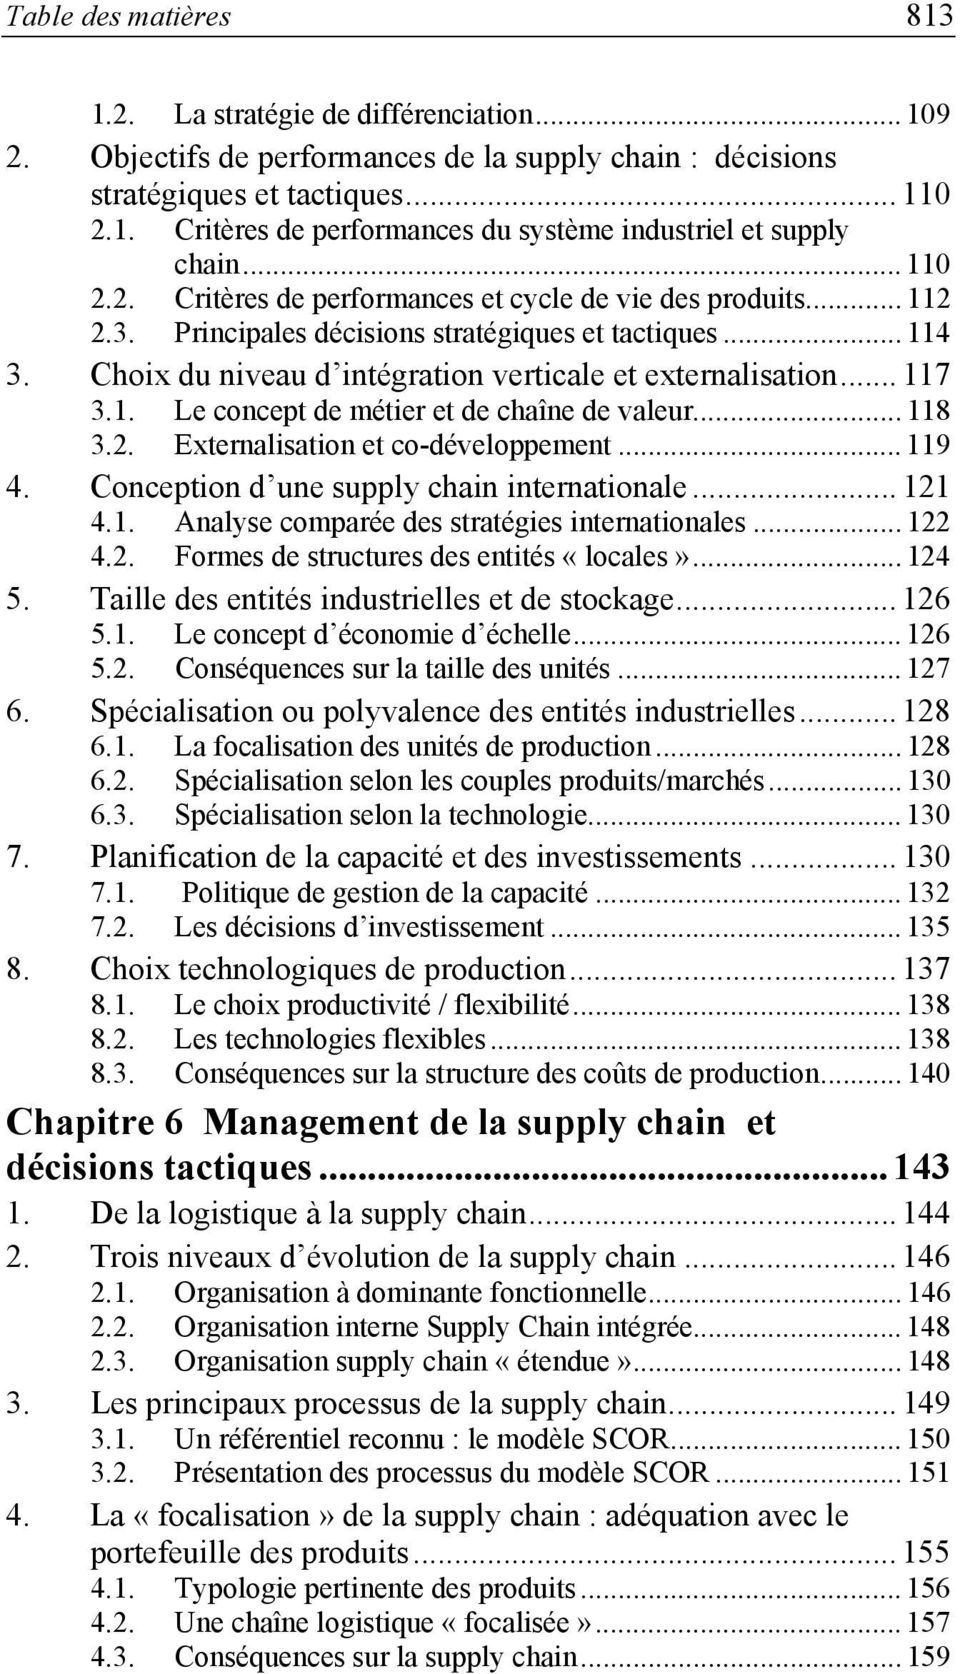 .. 117 3.1. Le concept de métier et de chaîne de valeur... 118 3.2. Externalisation et co-développement... 119 4. Conception d une supply chain internationale... 121 4.1. Analyse comparée des stratégies internationales.